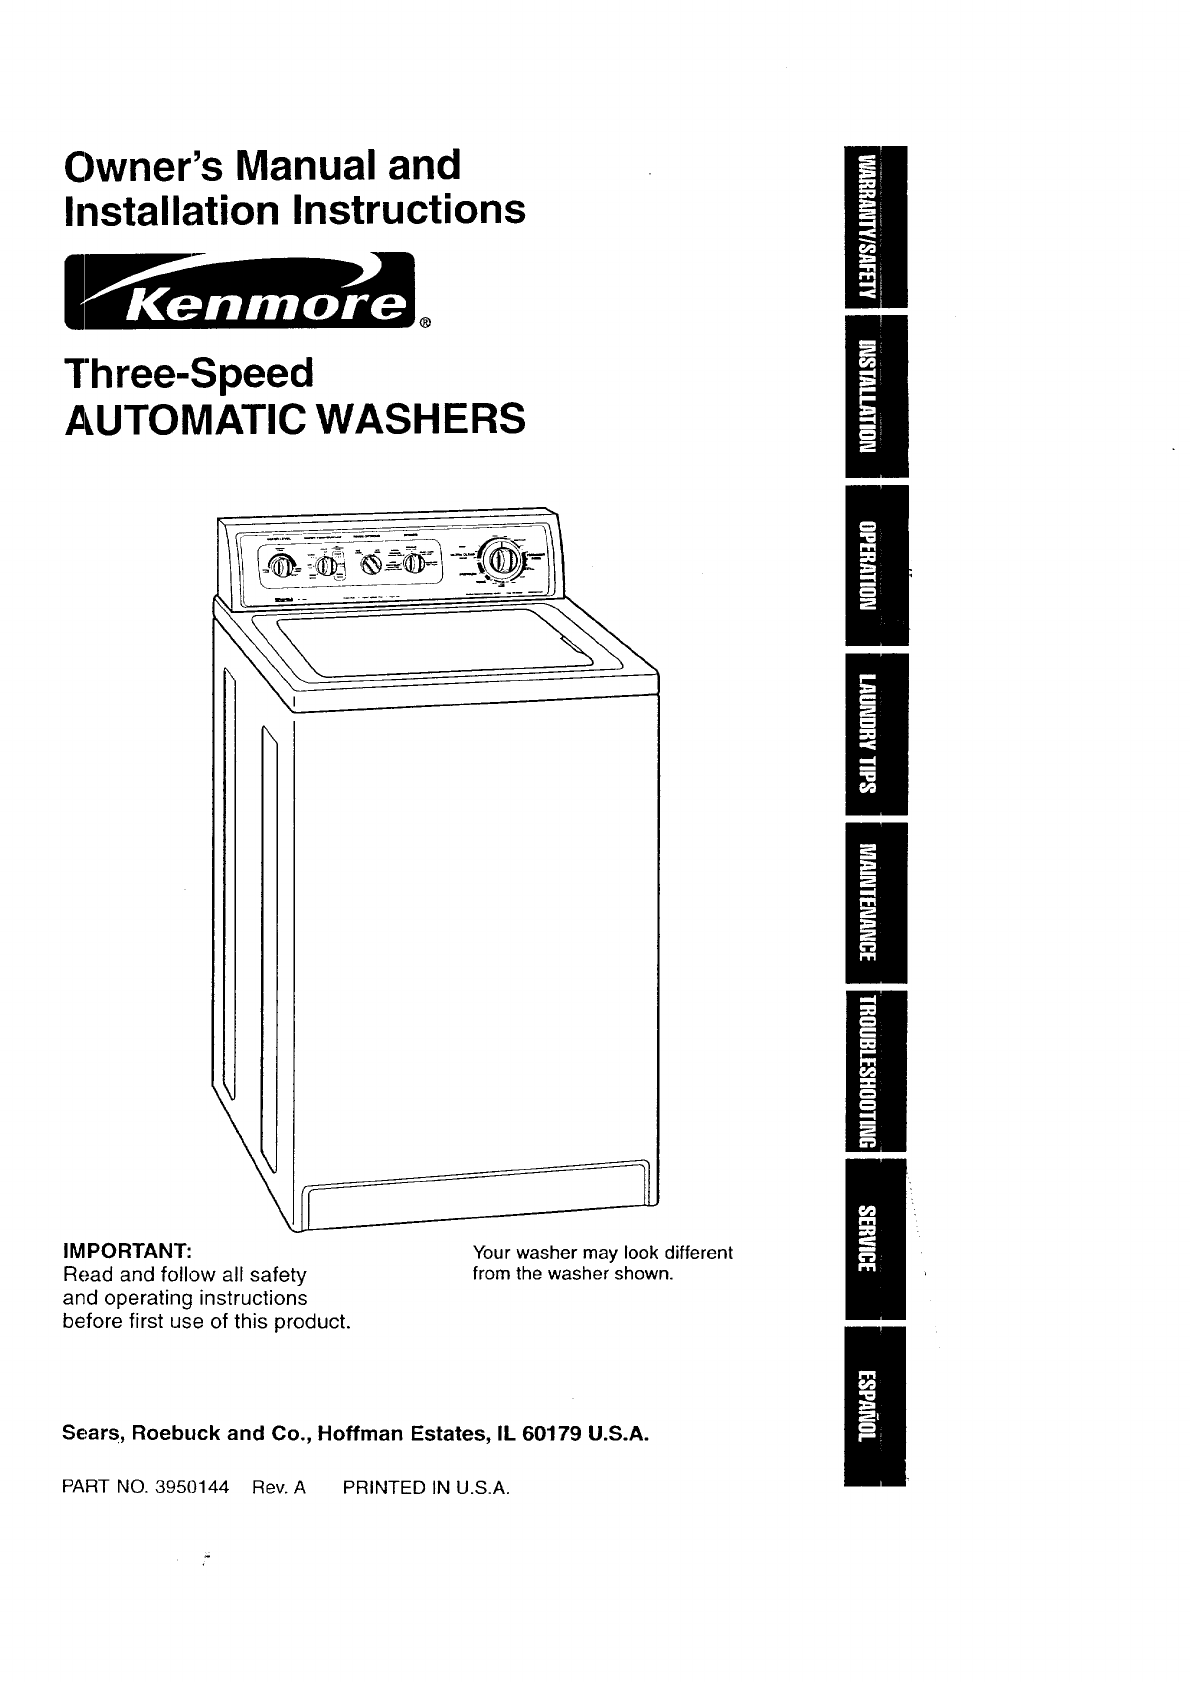 Kenmore Washer Model 110 Manual